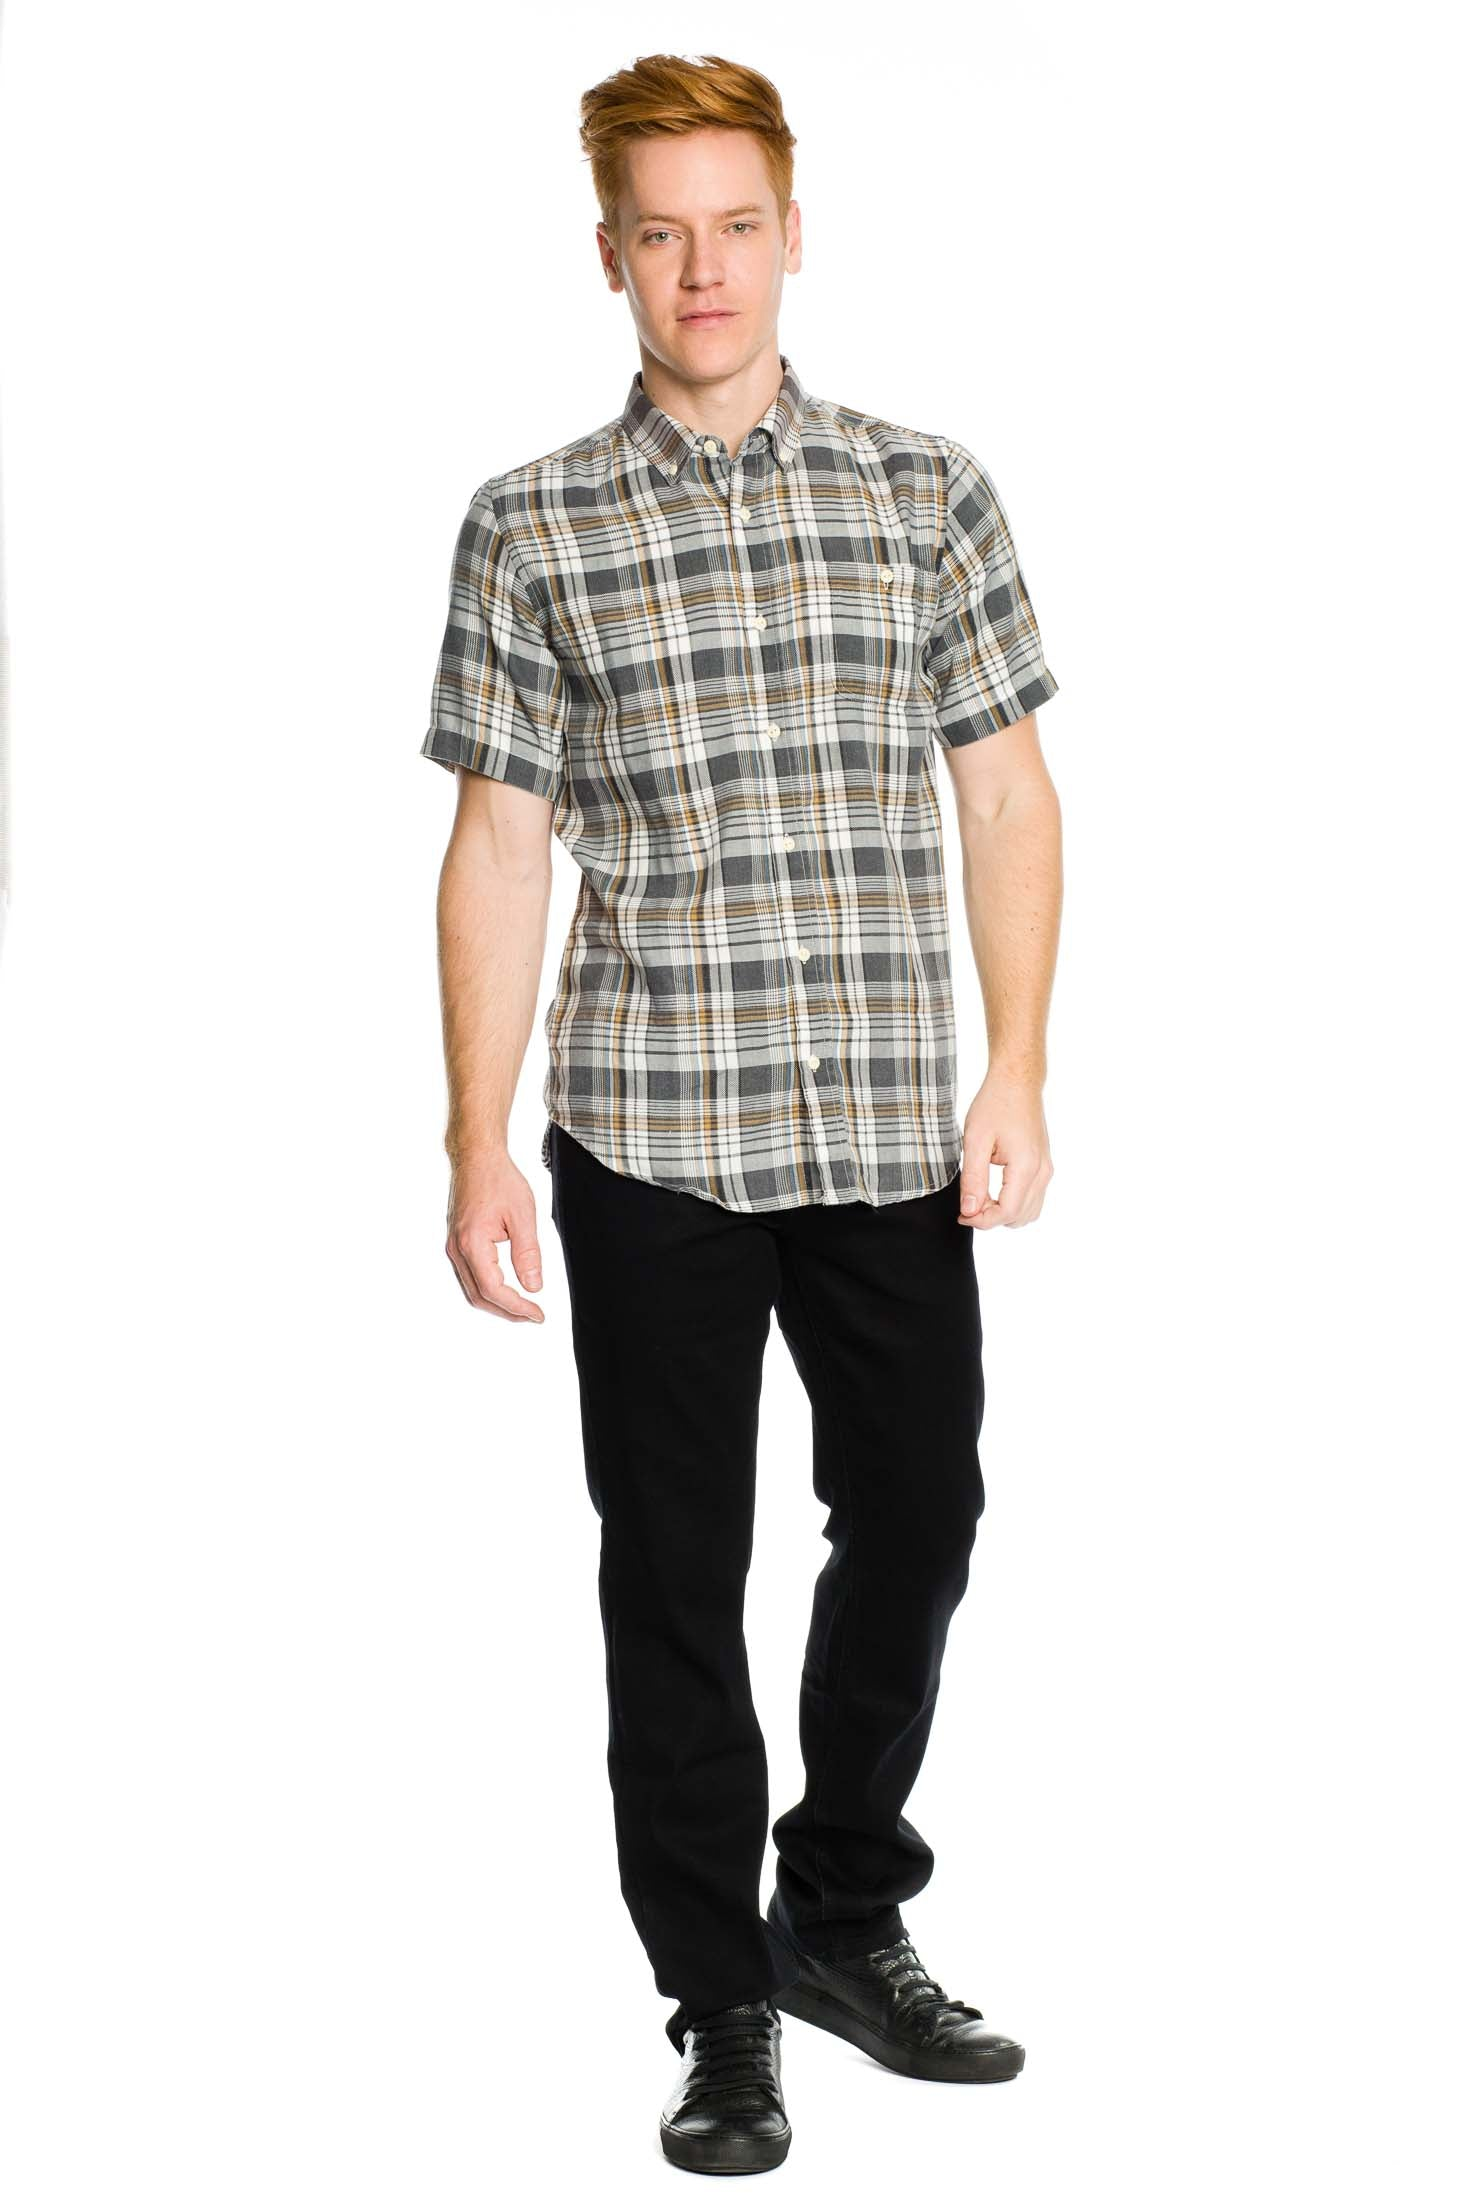 Highgarden Short Sleeve Shirt - Black - Ezekiel Clothing